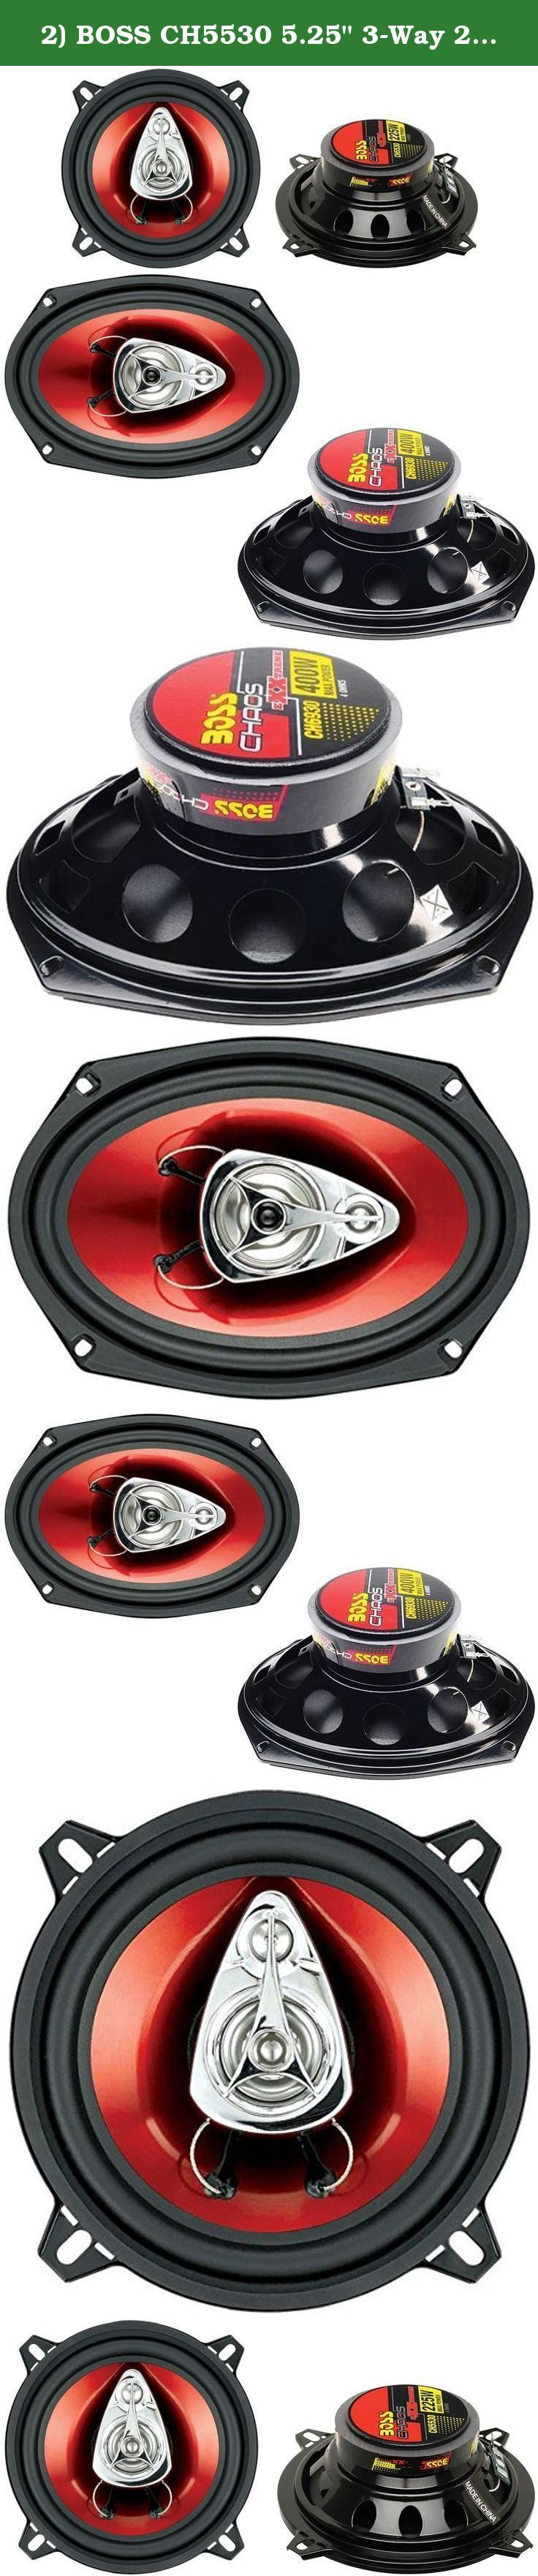 "2) BOSS CH5530 5.25"" 3-Way 225W + Boss CH6930 6x9"" 3-Way 400W Car Audio Speakers. Package Includes: Boss CH5530 5.25"" 225W 3-Way Car Speakers (1 pair) Boss CH6930 6x9"" 400W 3-Way Car Speakers (1 pair) ----- The Boss CH5530 5.25"" 3-Way 225W CHAOS Car Audio Stereo Speakers can handle 225 Watts of MAX power per pair, and 125 Watts of RMS power per pair. They feature a 1"" high-temperature aluminum voice coil, a poly injected cone with foam surround and a stamped steel basket. Upgrade your..."